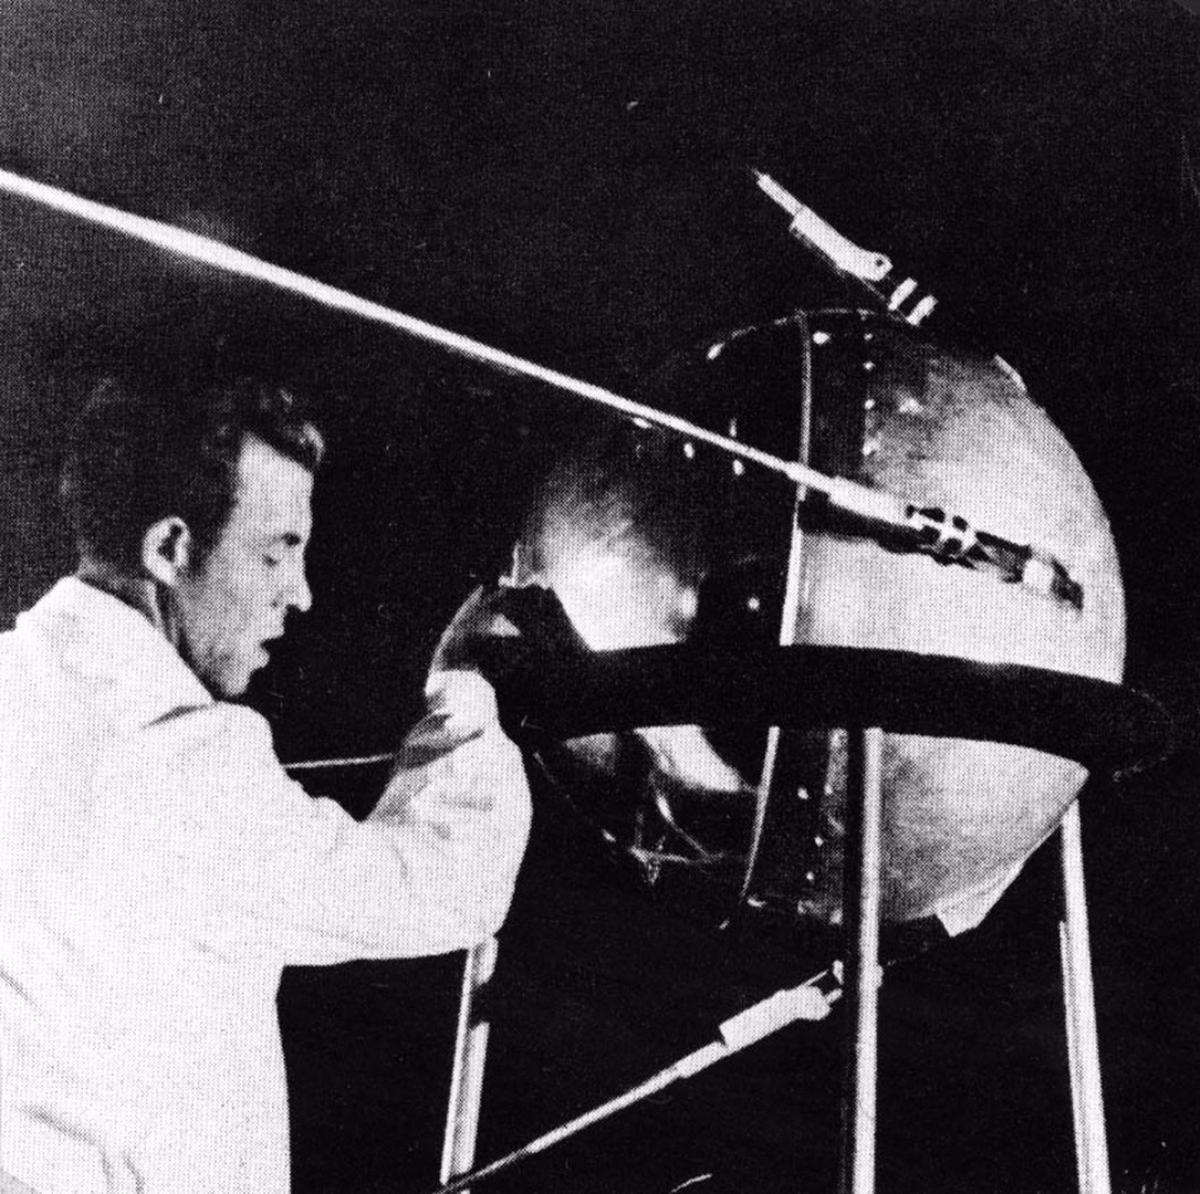 One of the first images released of the actual Sputnik 1 satellite